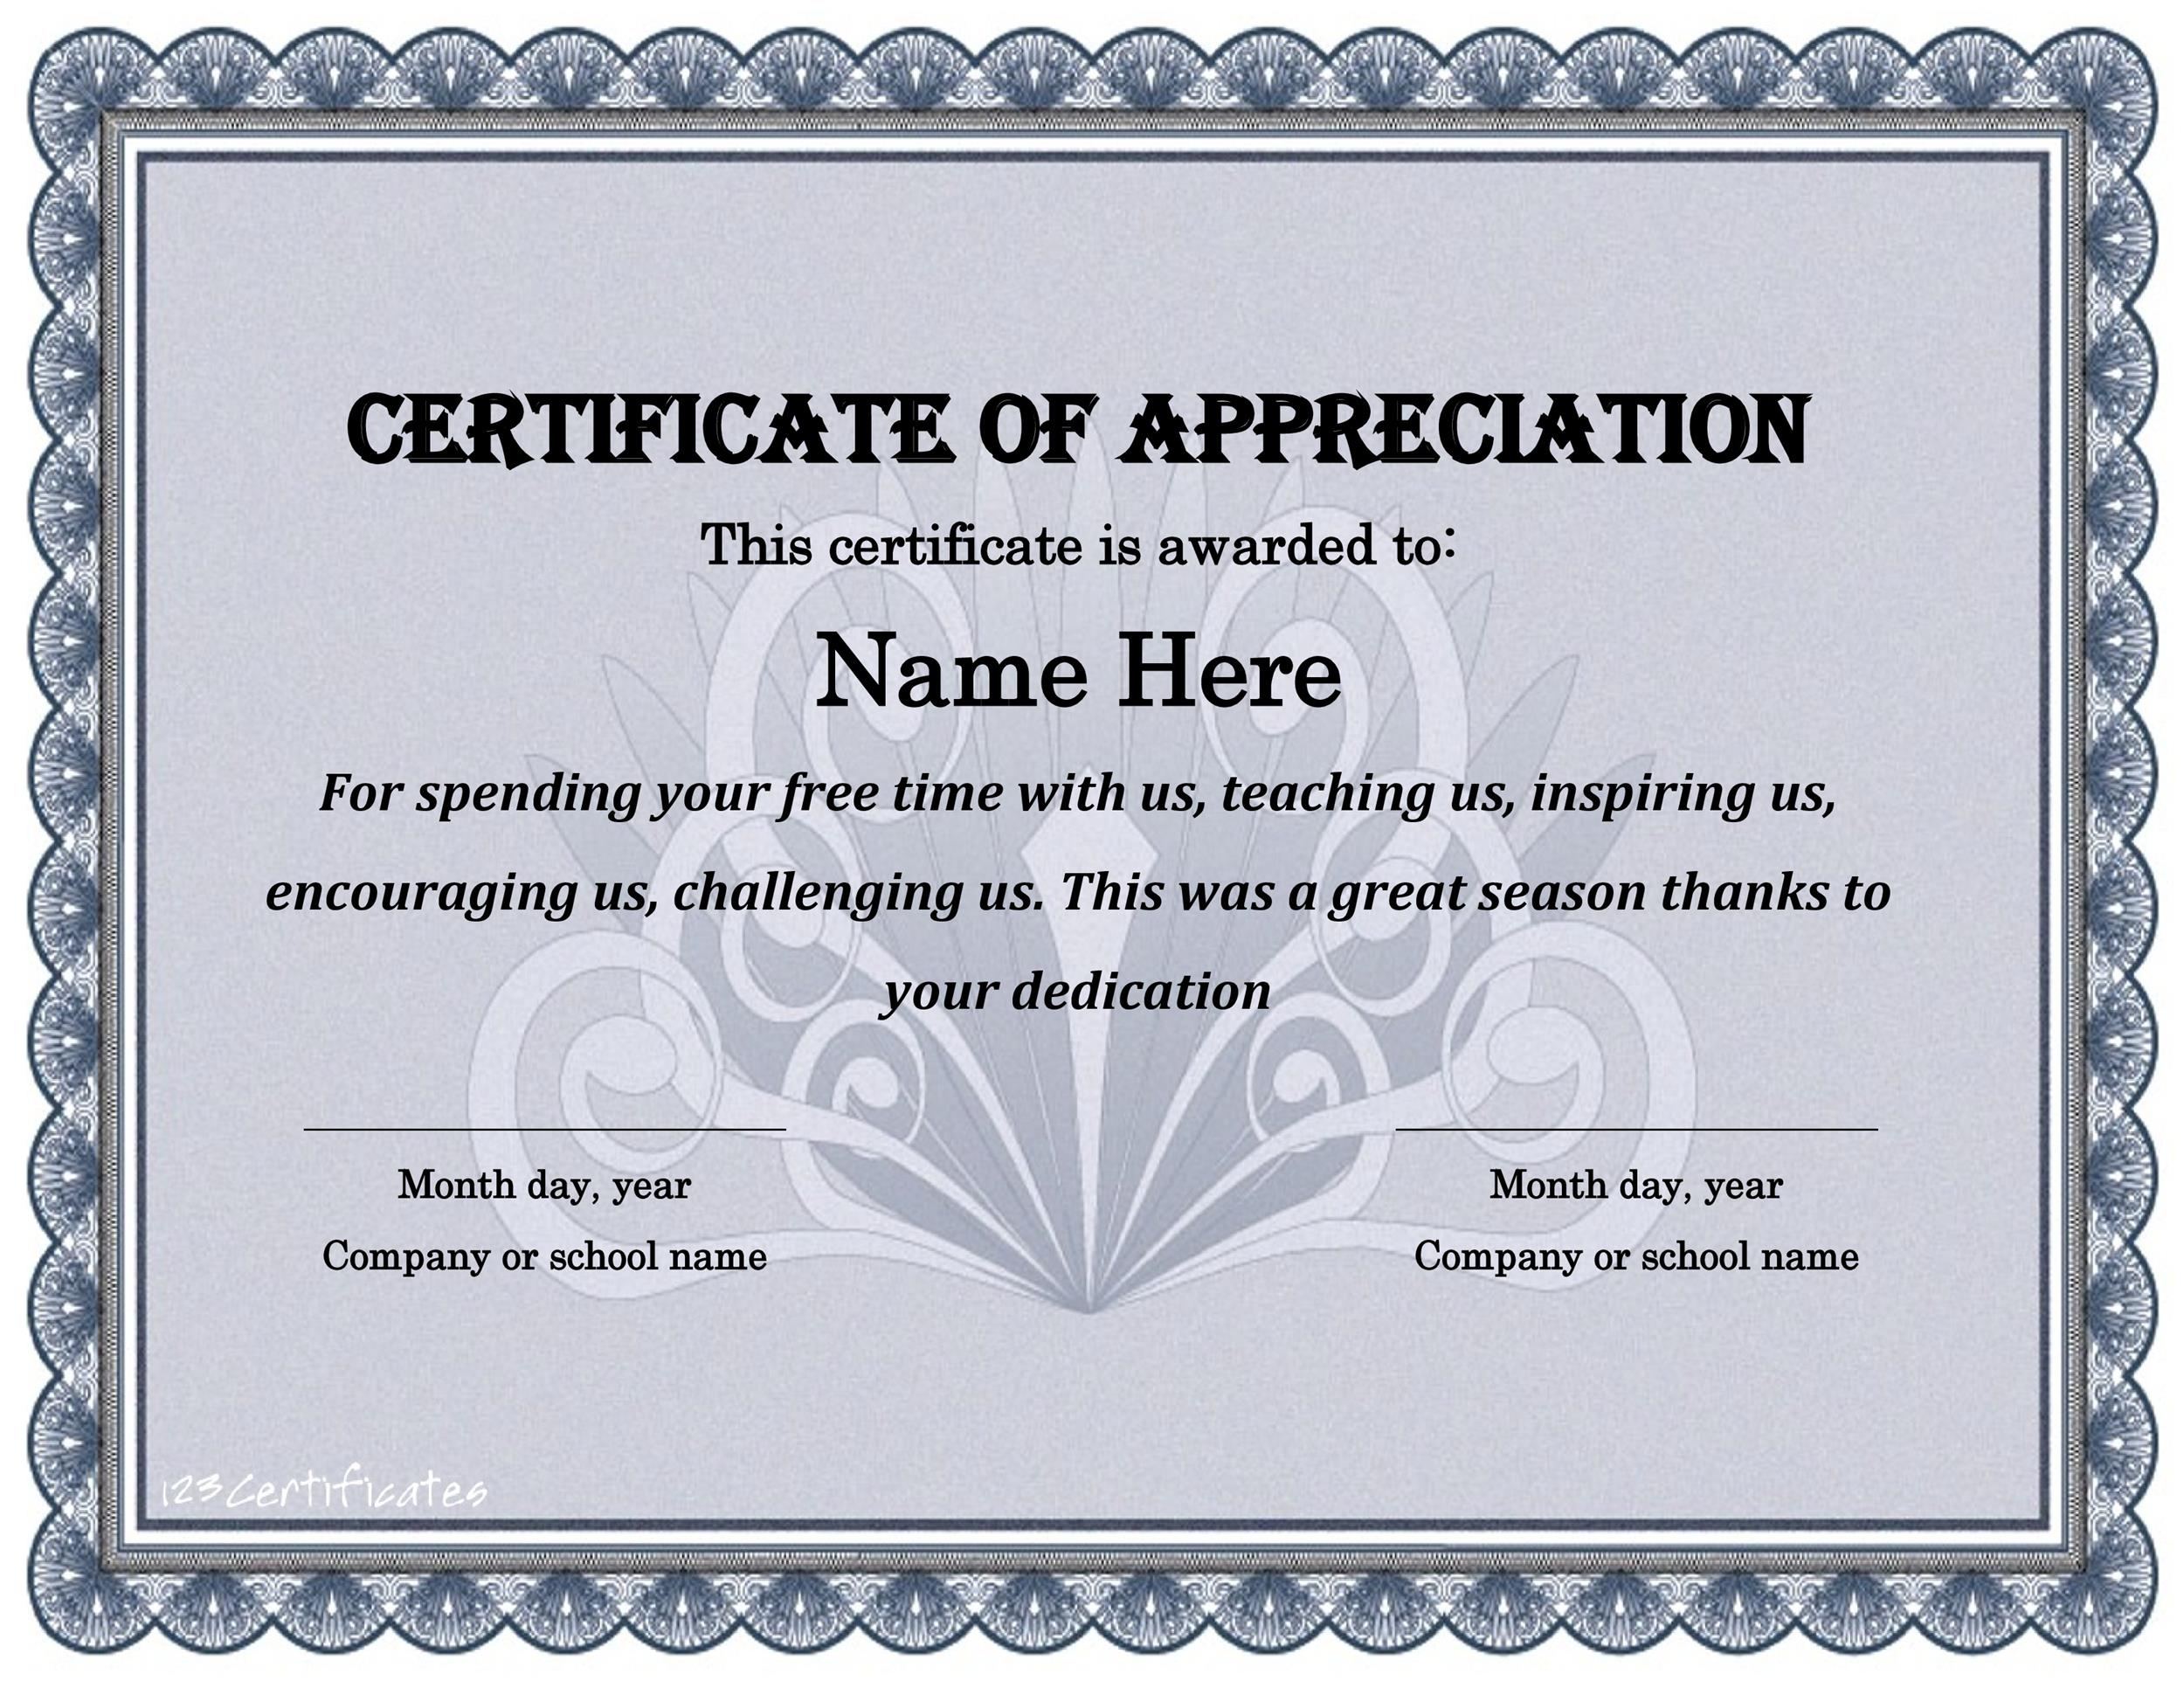 30 free certificate of appreciation templates and letters printable certificate of appreciation 21 yelopaper Images